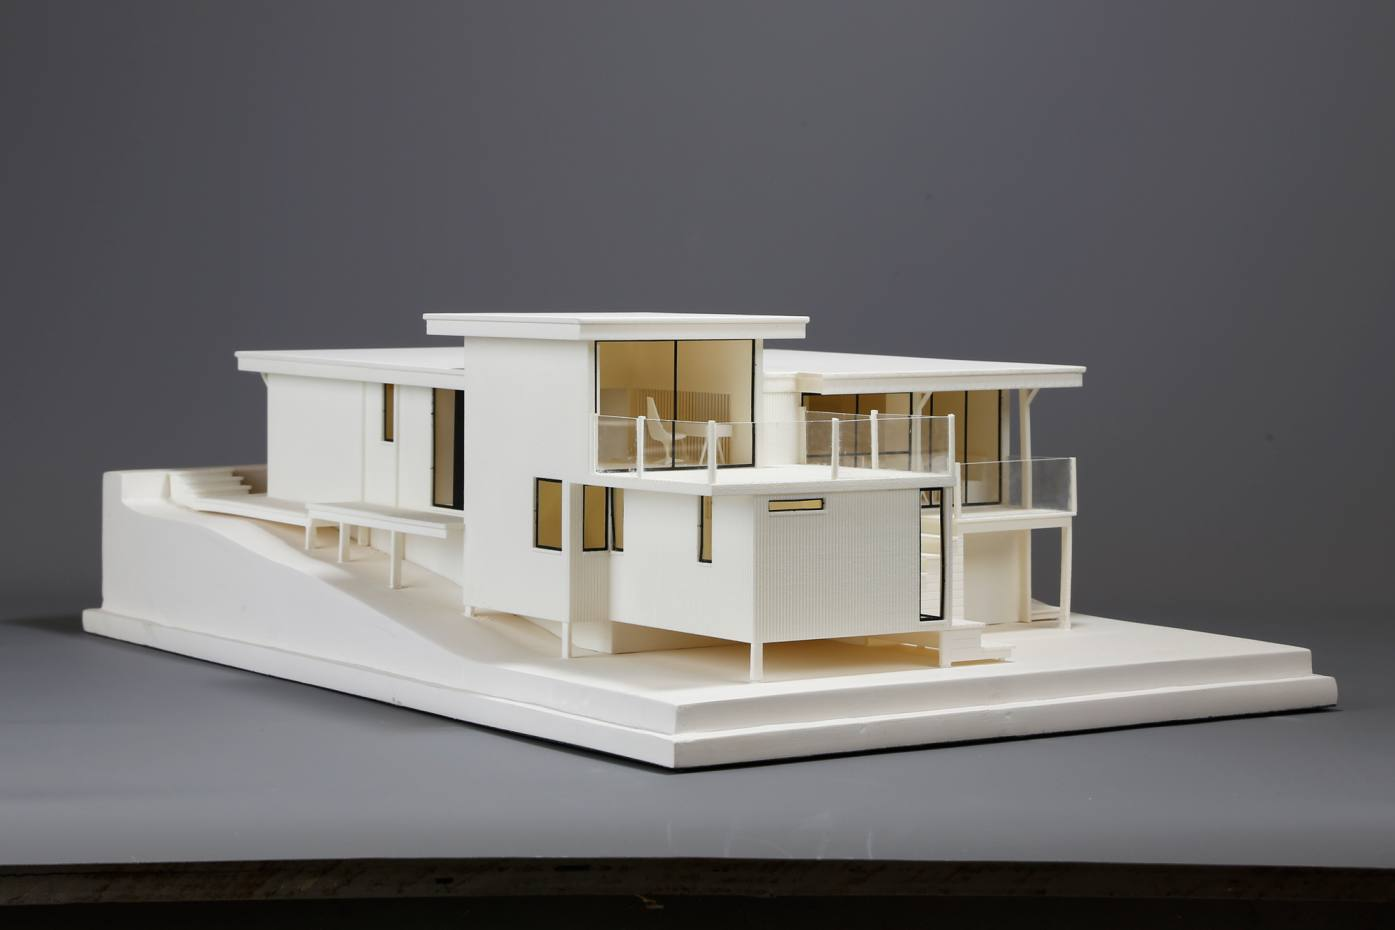 A 3D maquette model of one of Walter Segal's south London self-build houses